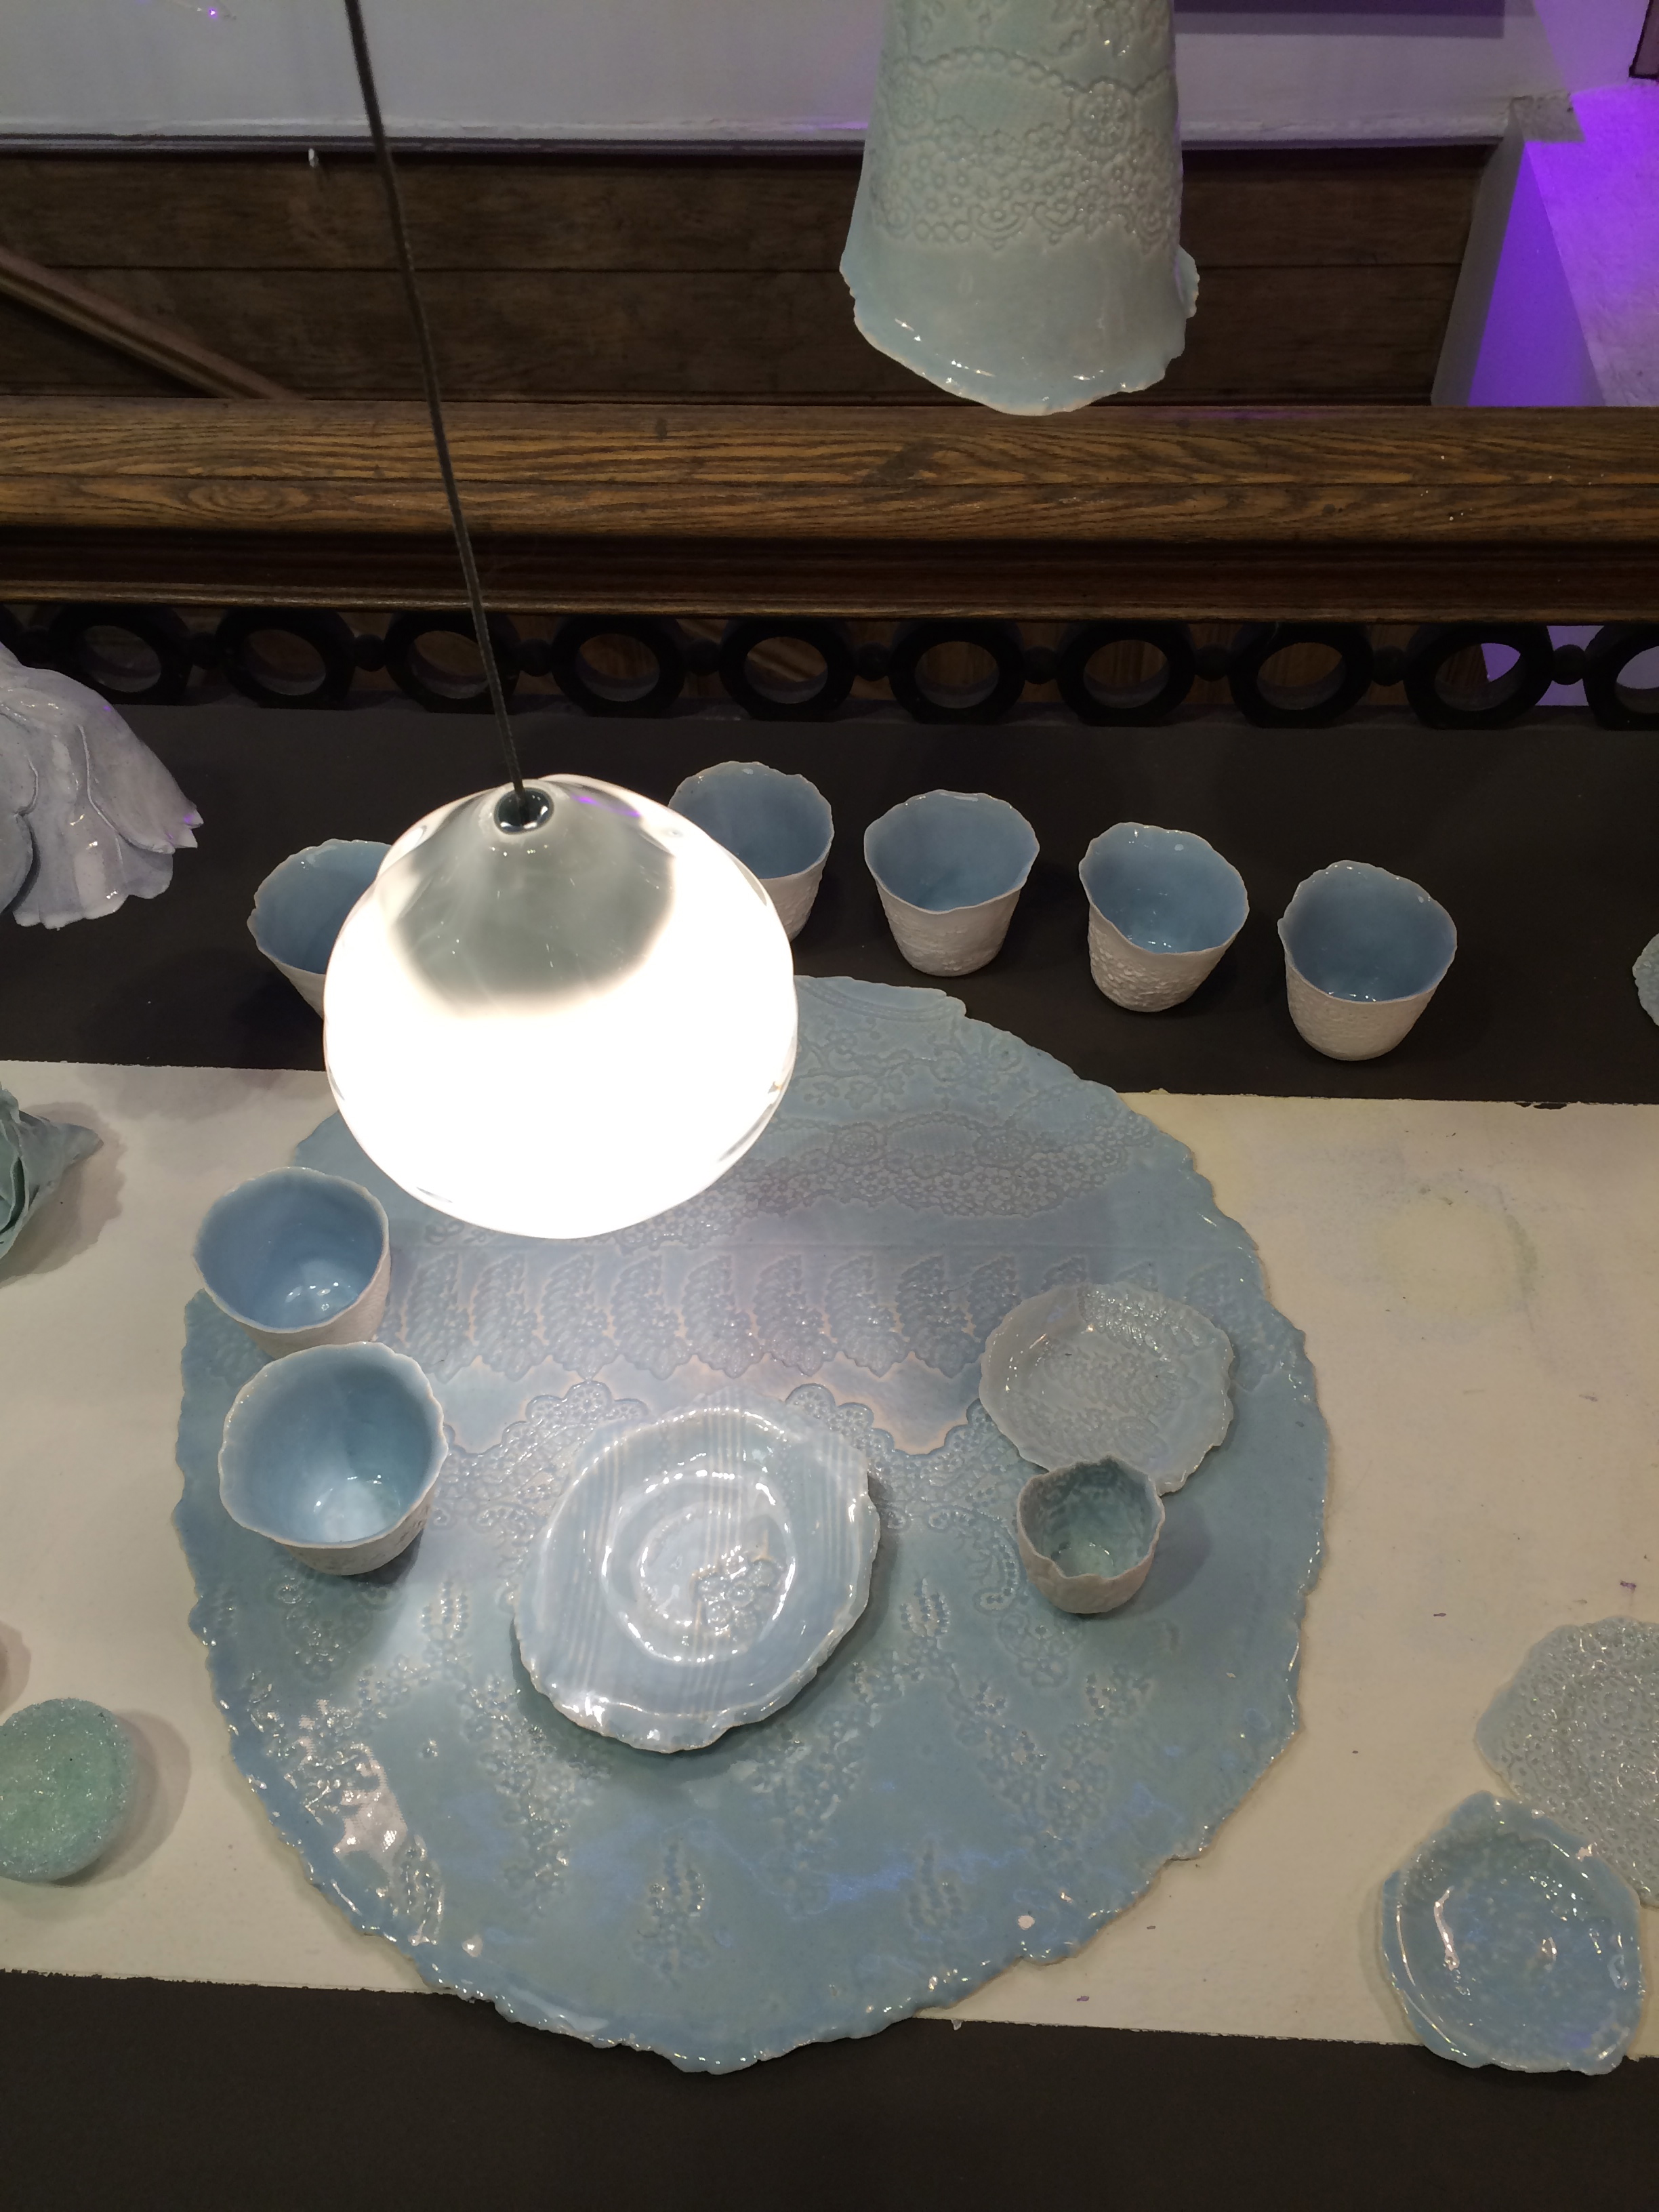 Got inspired by the amazing ceramics at ABC Carpet and Home